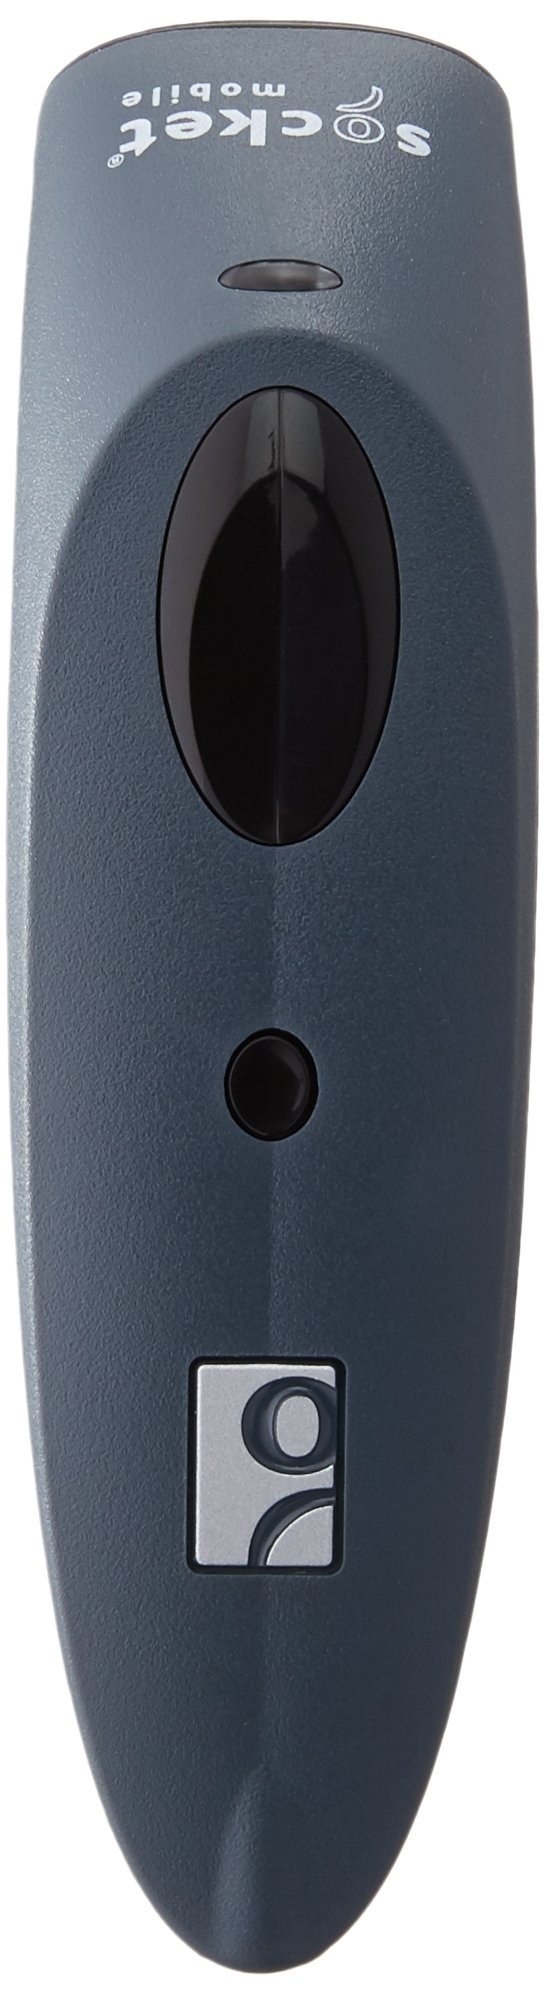 CHS 7Ci, 1D Imager Barcode Scanner, Gray by Socket Mobile